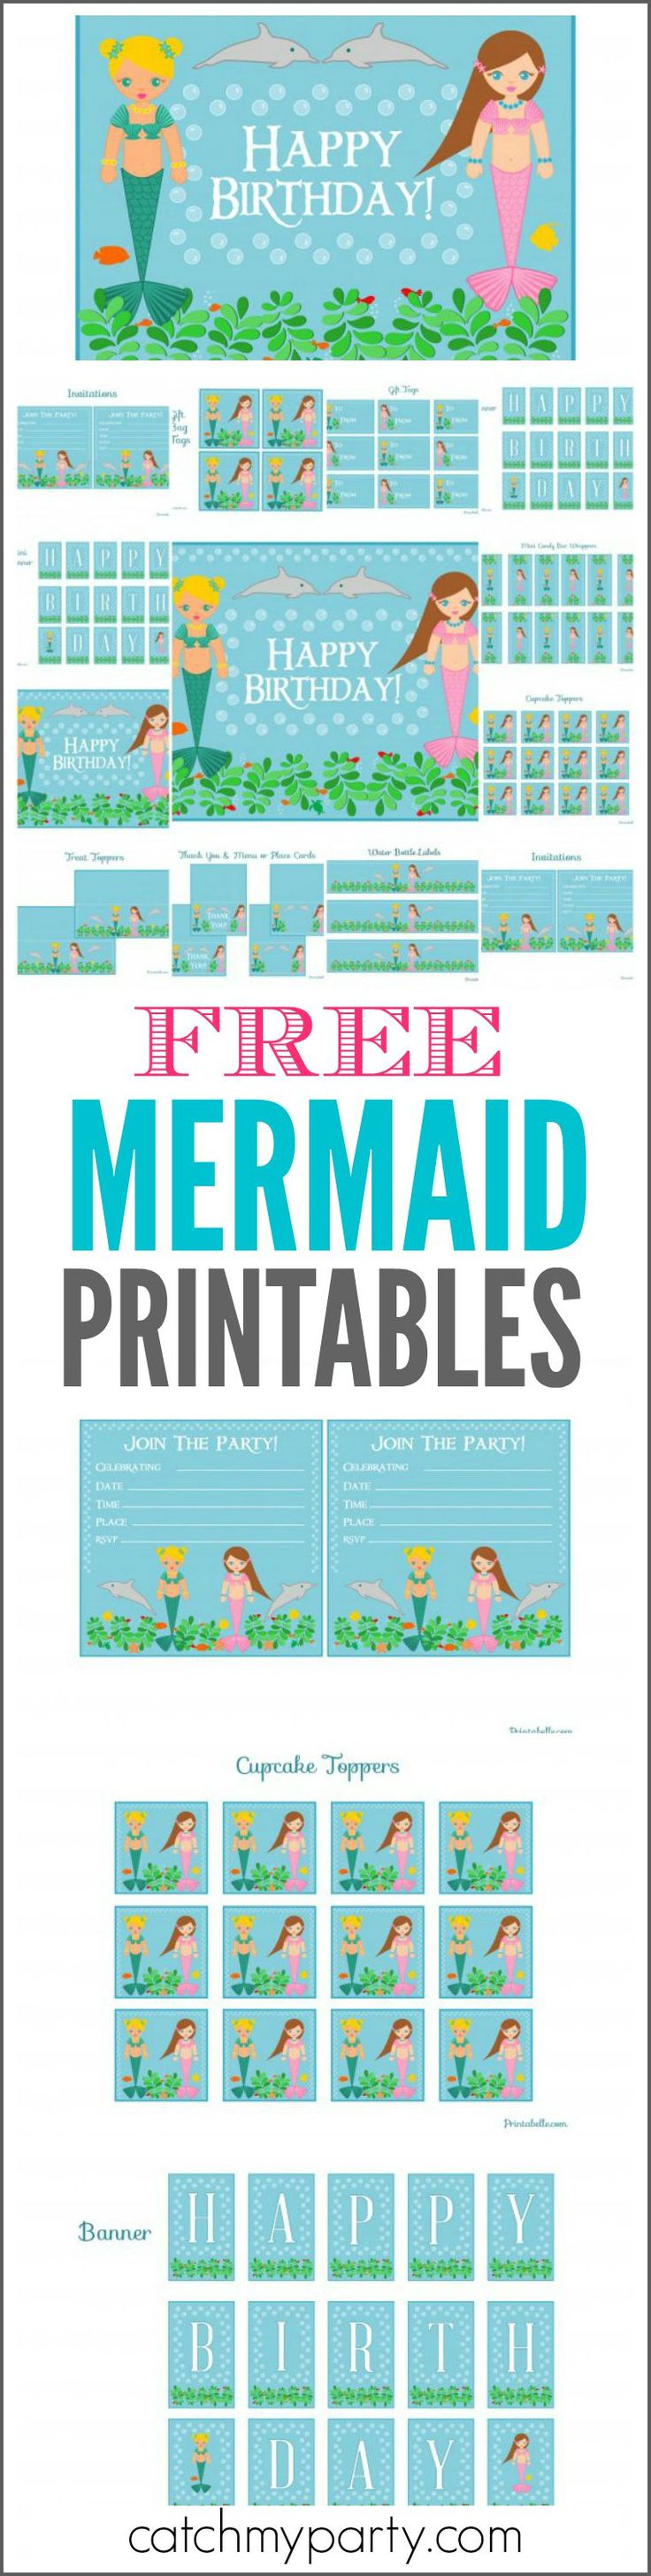 "If you are looking for free printables for your mermaid party, we've got them... printable invitations, cupcake toppers, a welcome sign, water bottle labels, favor tags, a ""Happy Birthday"" banner, and more! Also see more mermaid party ideas at CatchMyParty.com."